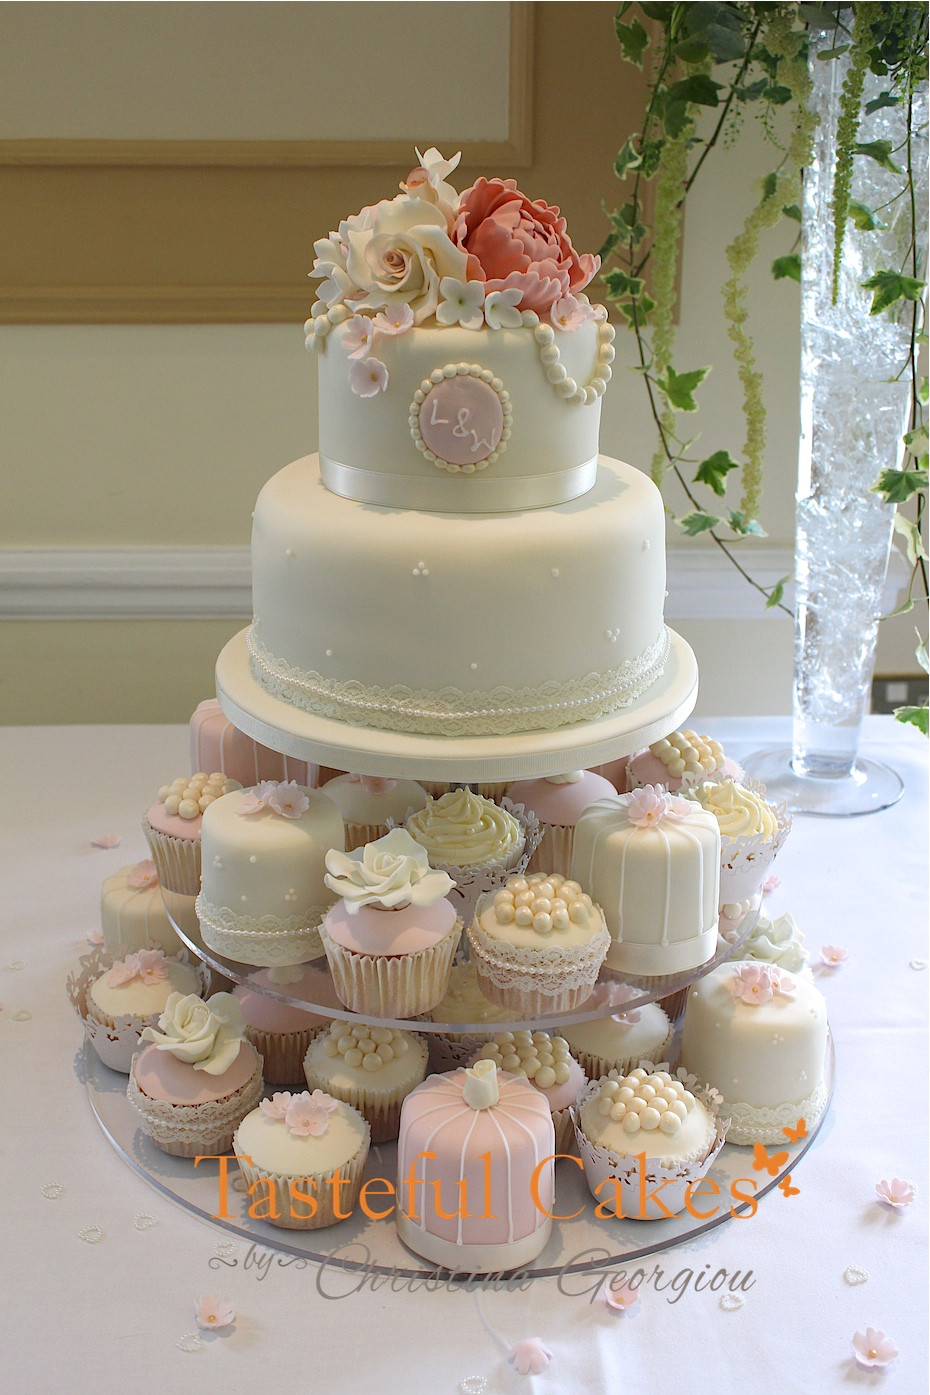 Wedding Cakes And Cupcakes  Tasteful Cakes By Christina Georgiou